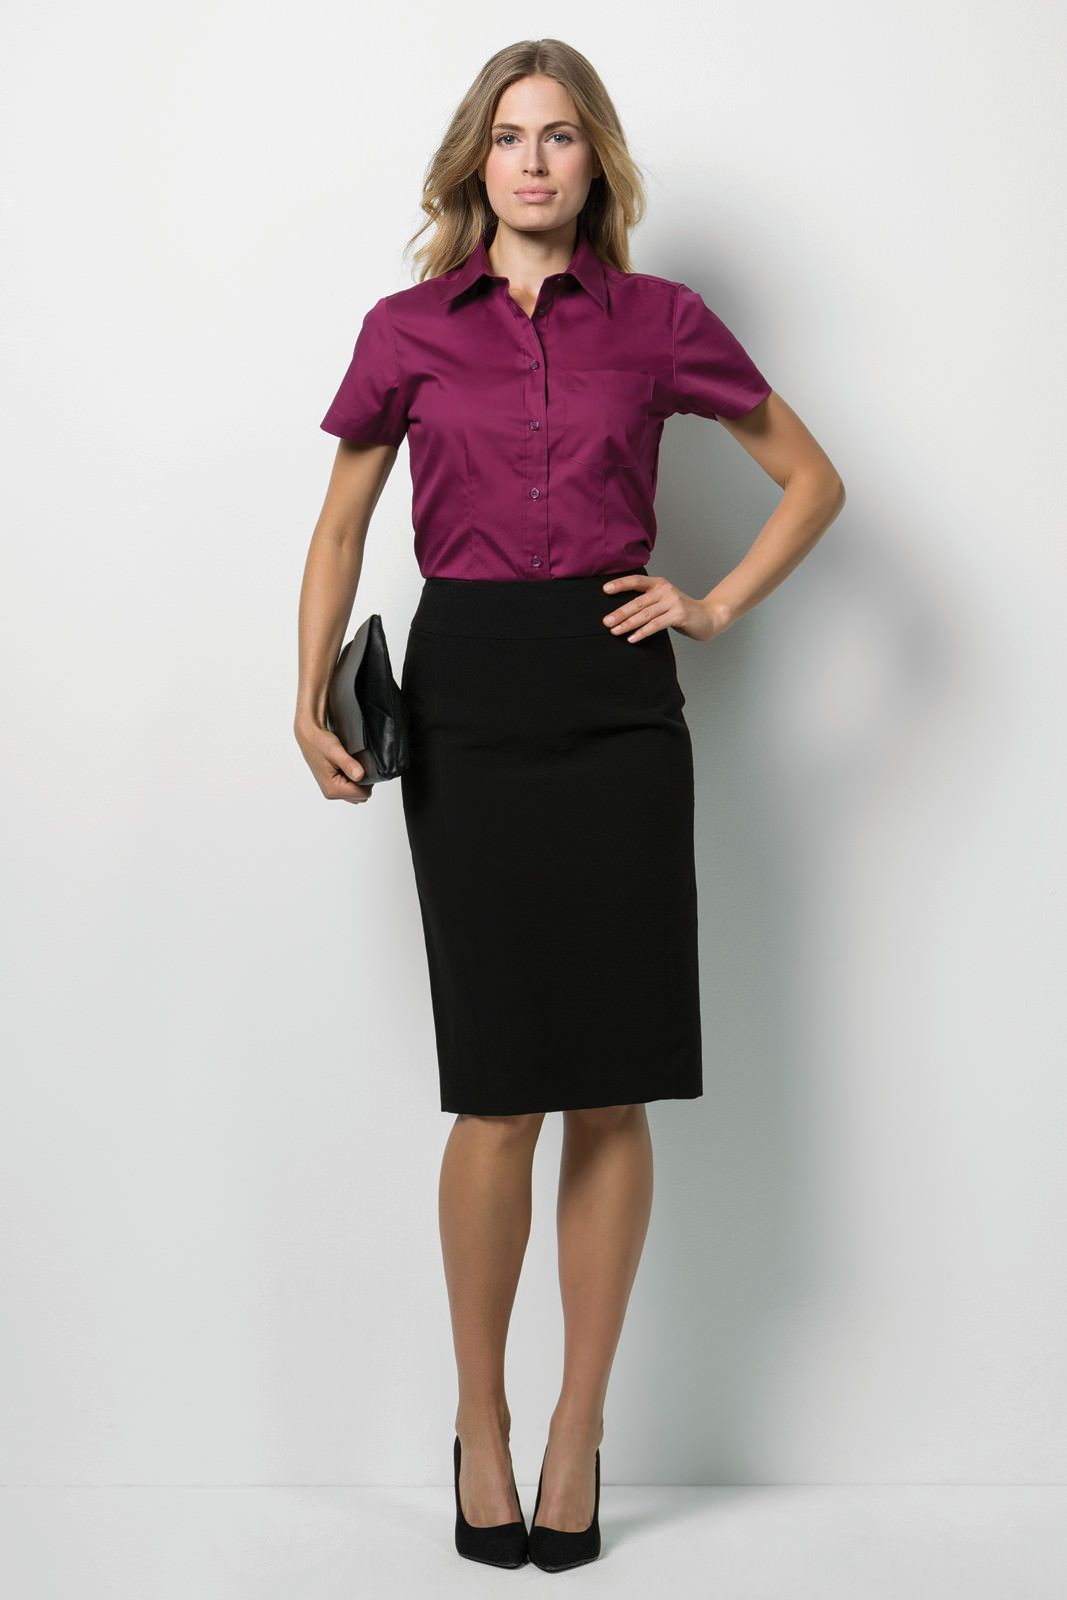 KK719 Corporate Oxford Shirt - This women's Oxford shirt with top ...